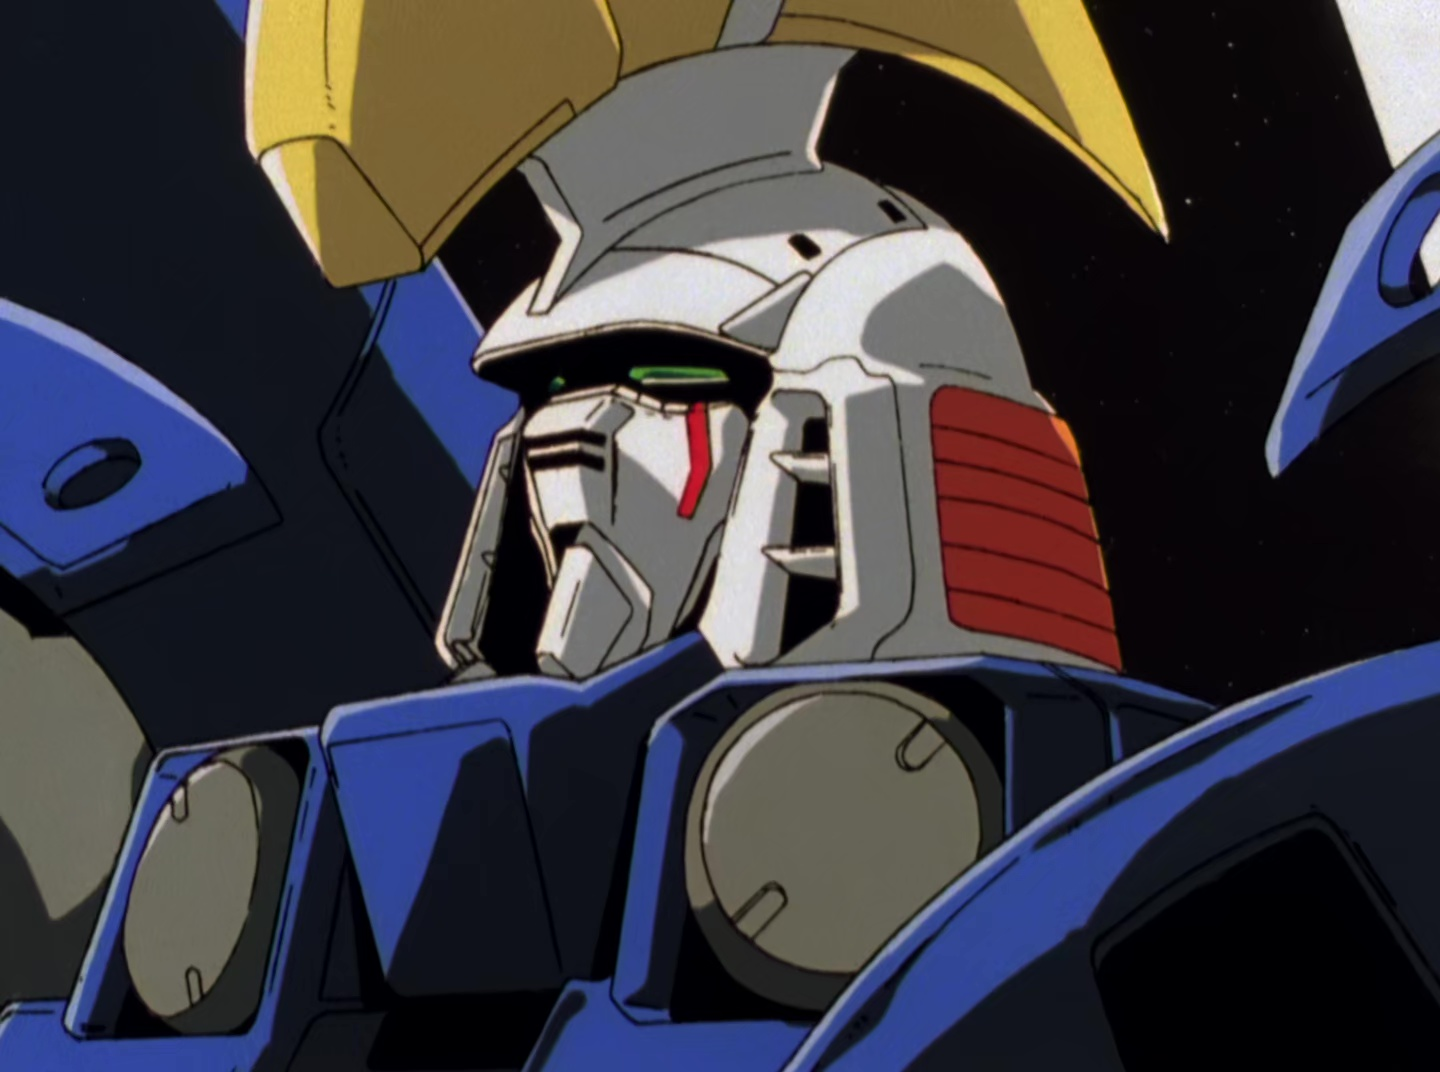 File:Tallgeese 2 head.jpg